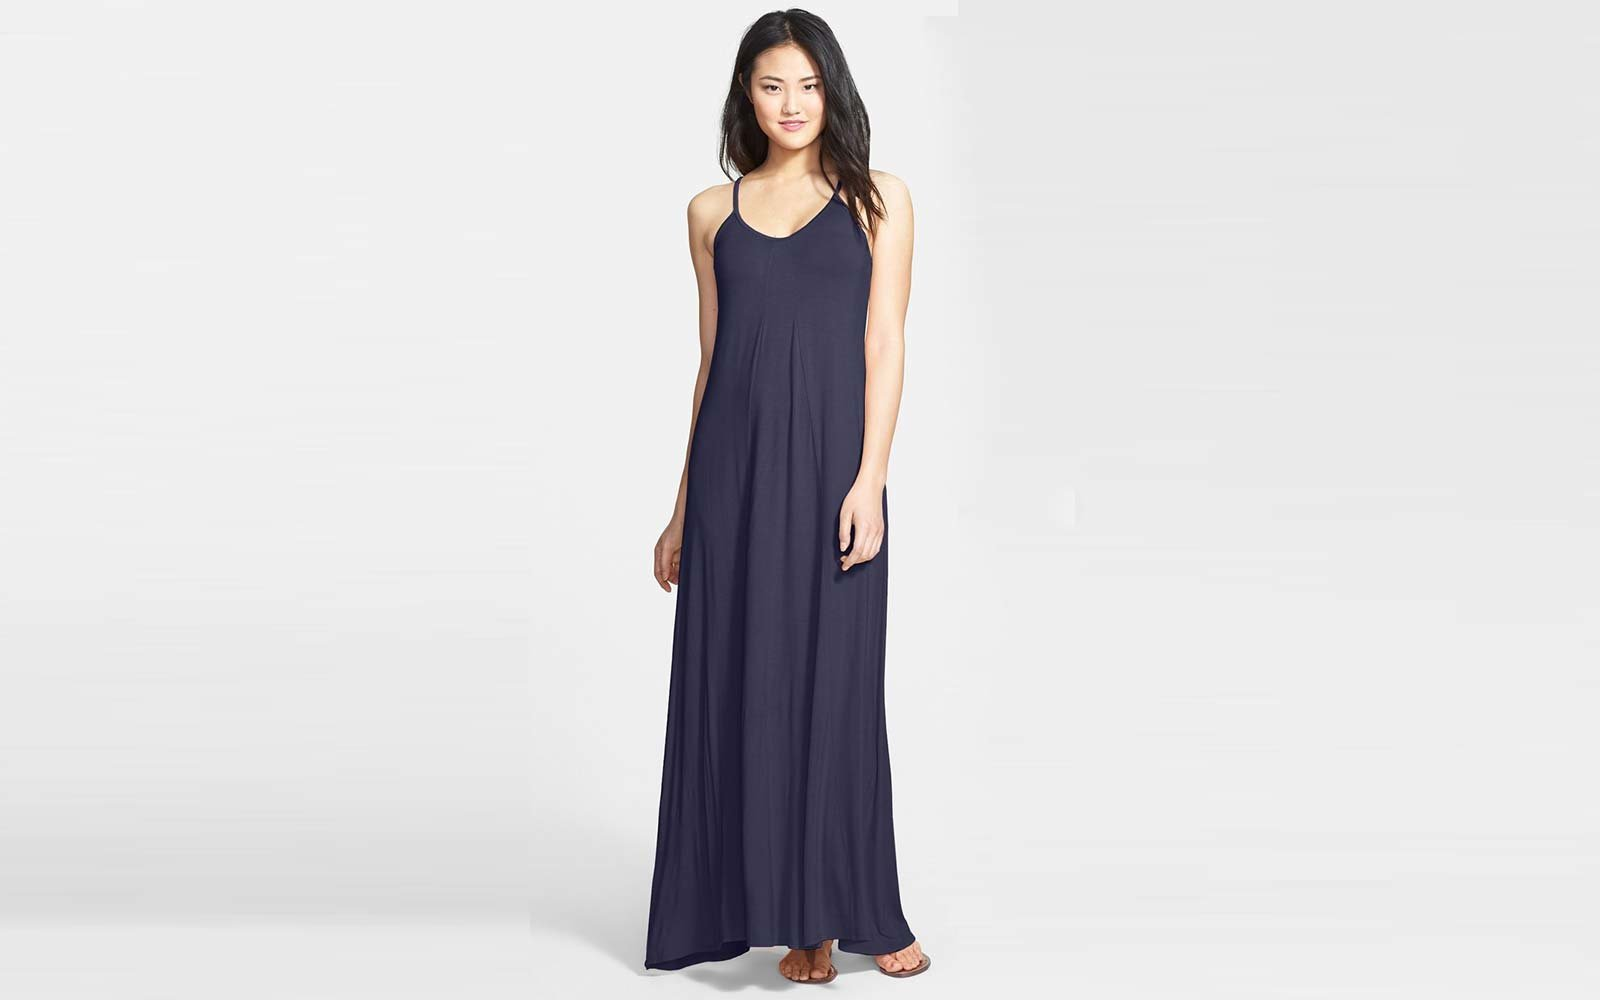 551b1443d29 Loveappella Maxi Dress in Midnight Blue